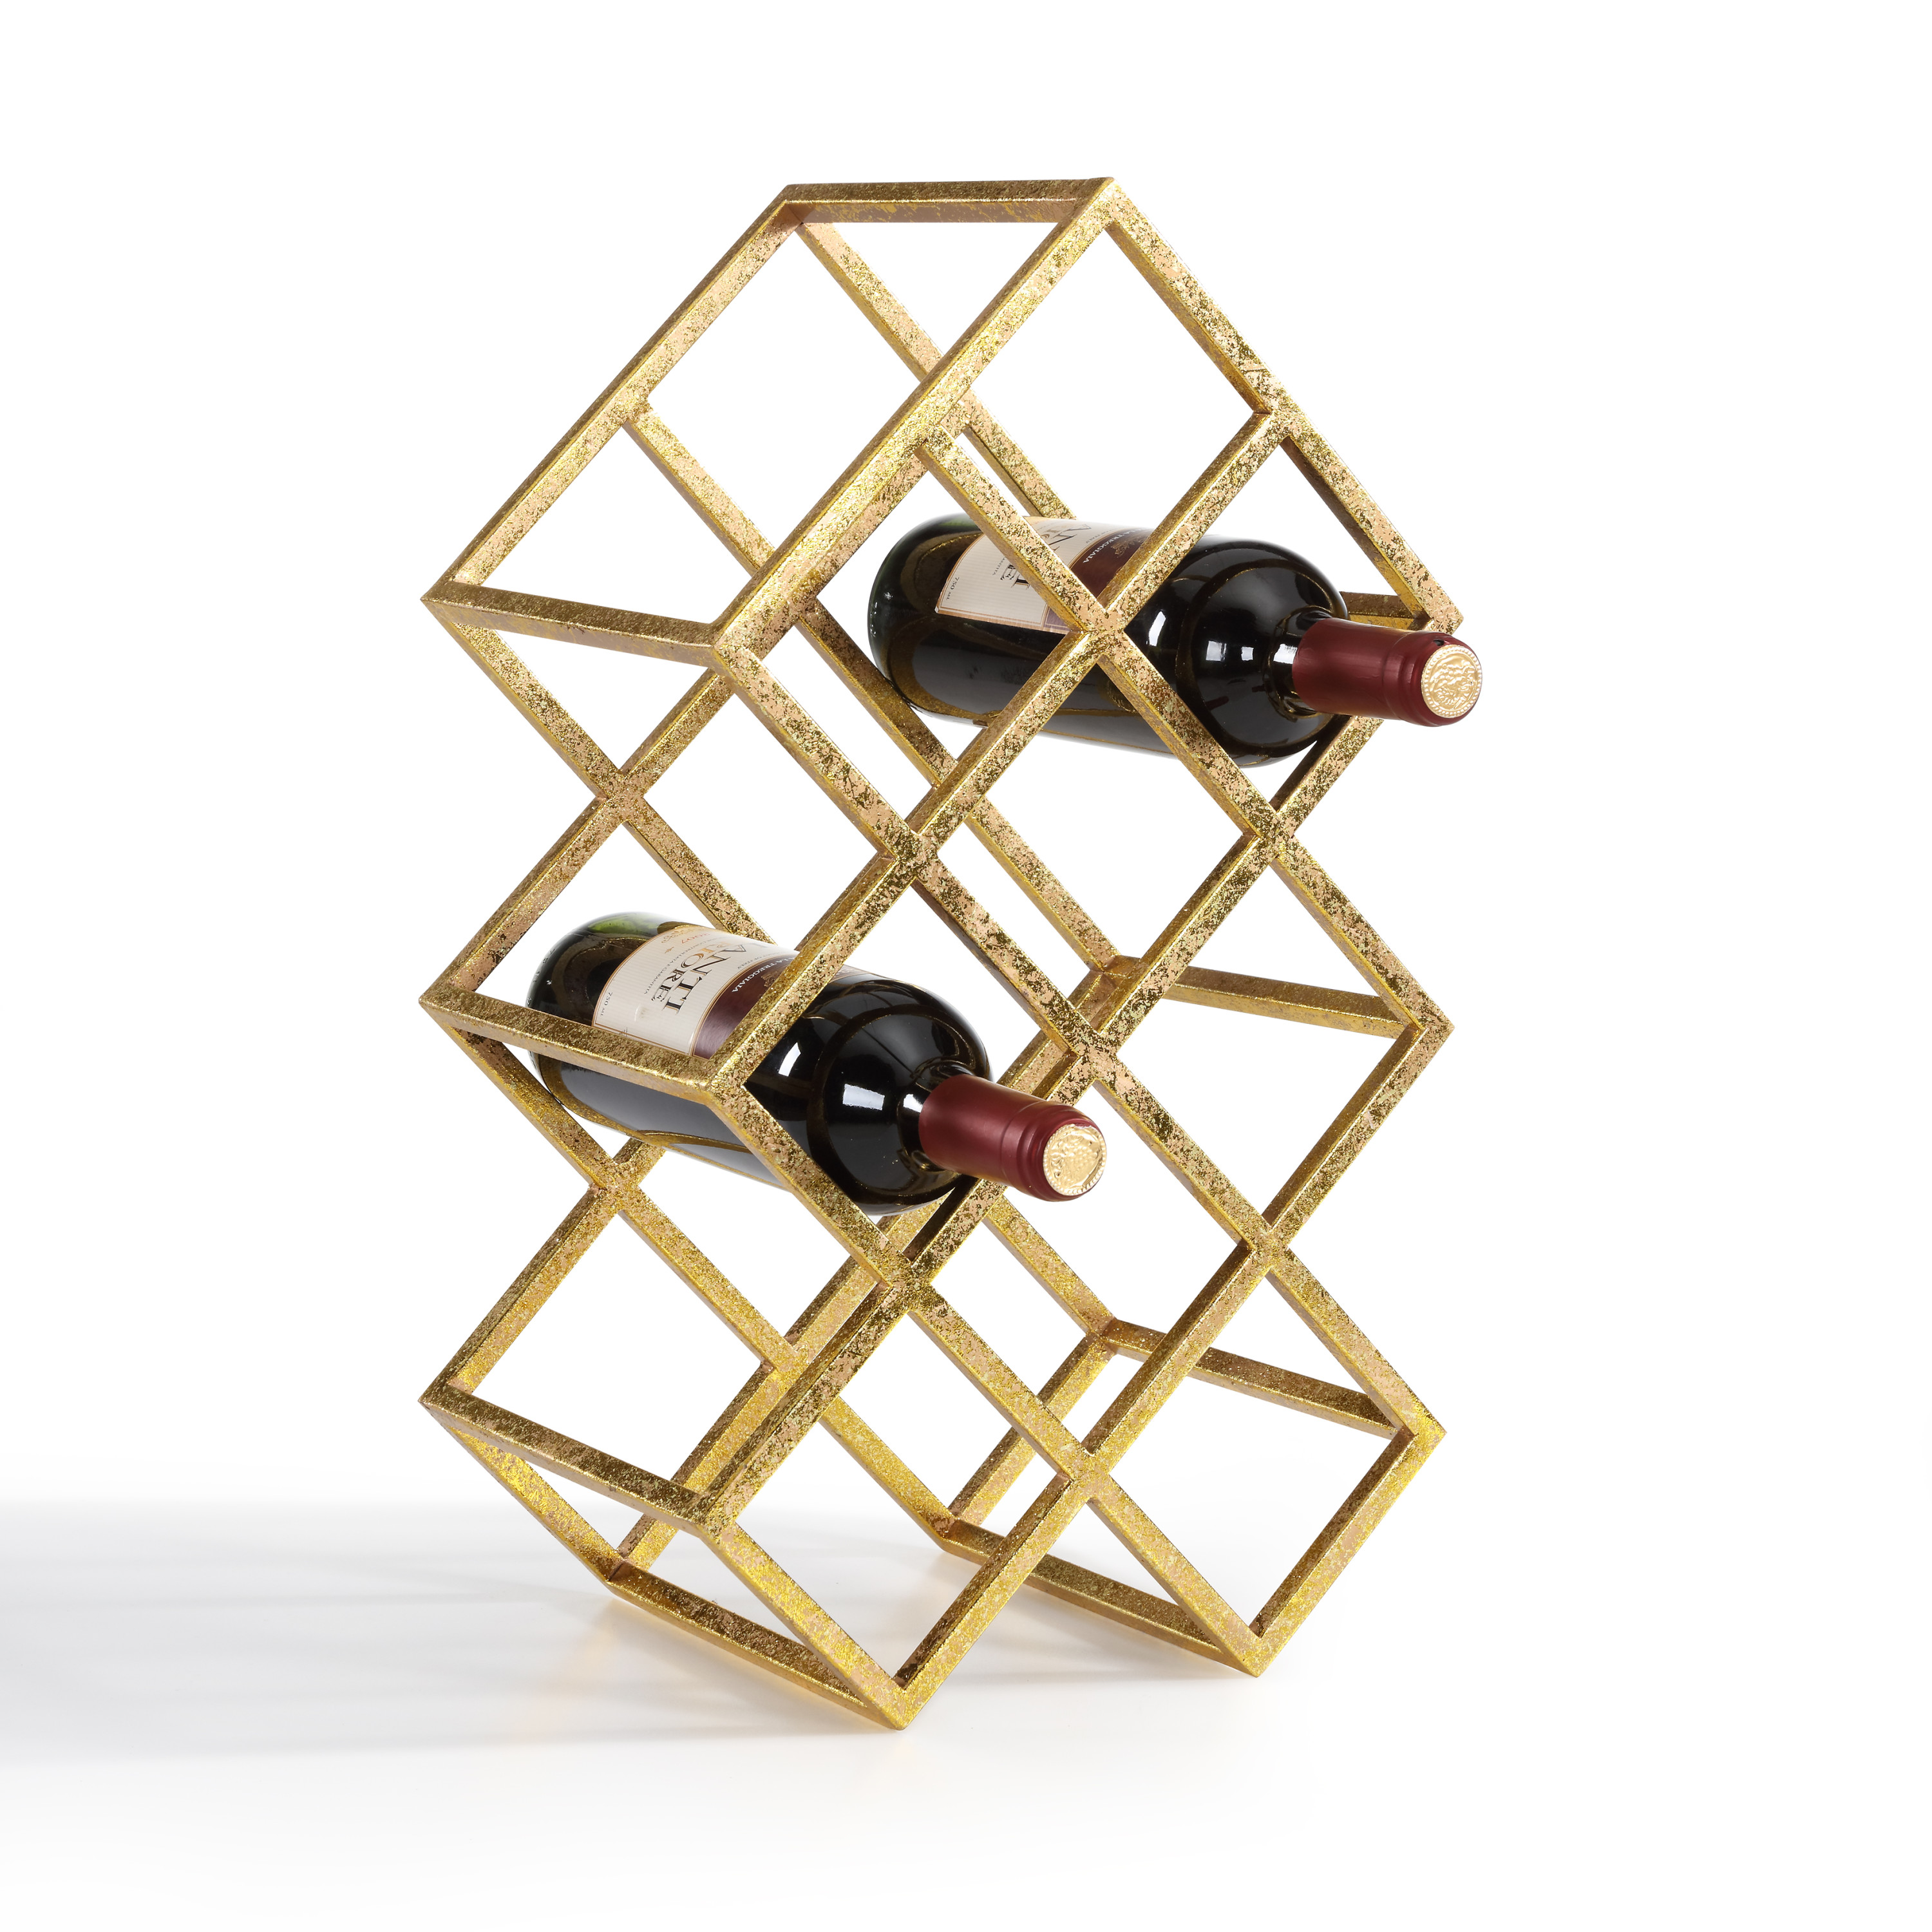 Danya B. Sparkling Gold 9 Bottle Wine Rack by Danya B